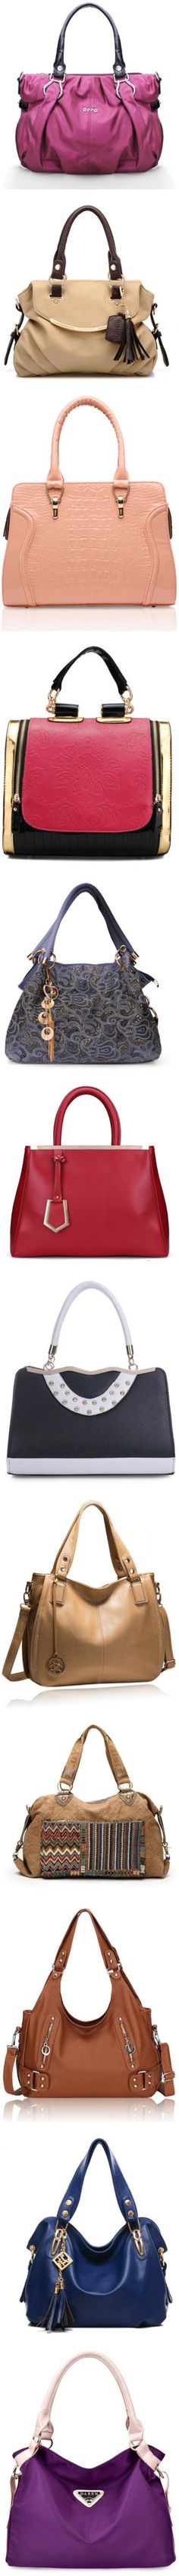 Handbags by loluxe featuring women's fashion purses, totes, clutches and accessories